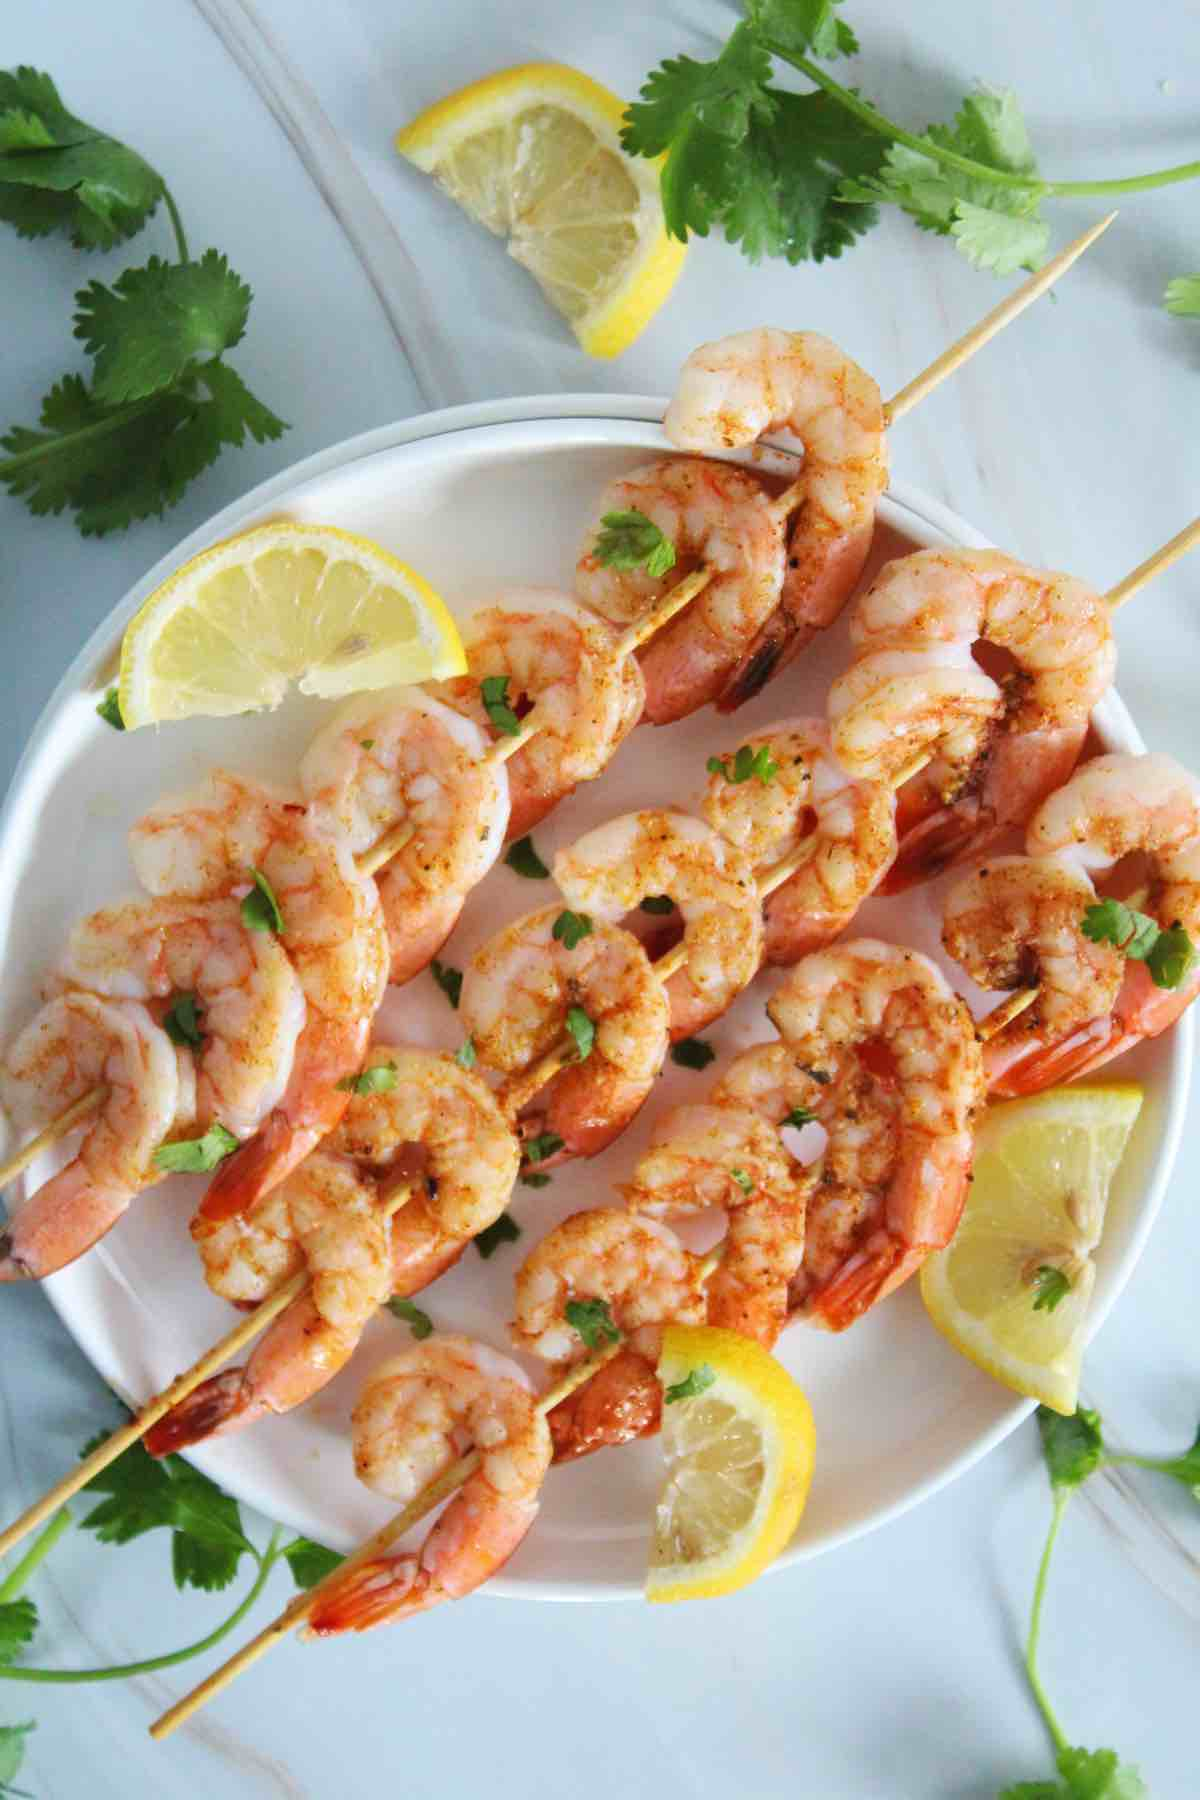 This Outback Steakhouse copycat recipe for grilled shrimp on the barbie is perfect for hot, summer days.